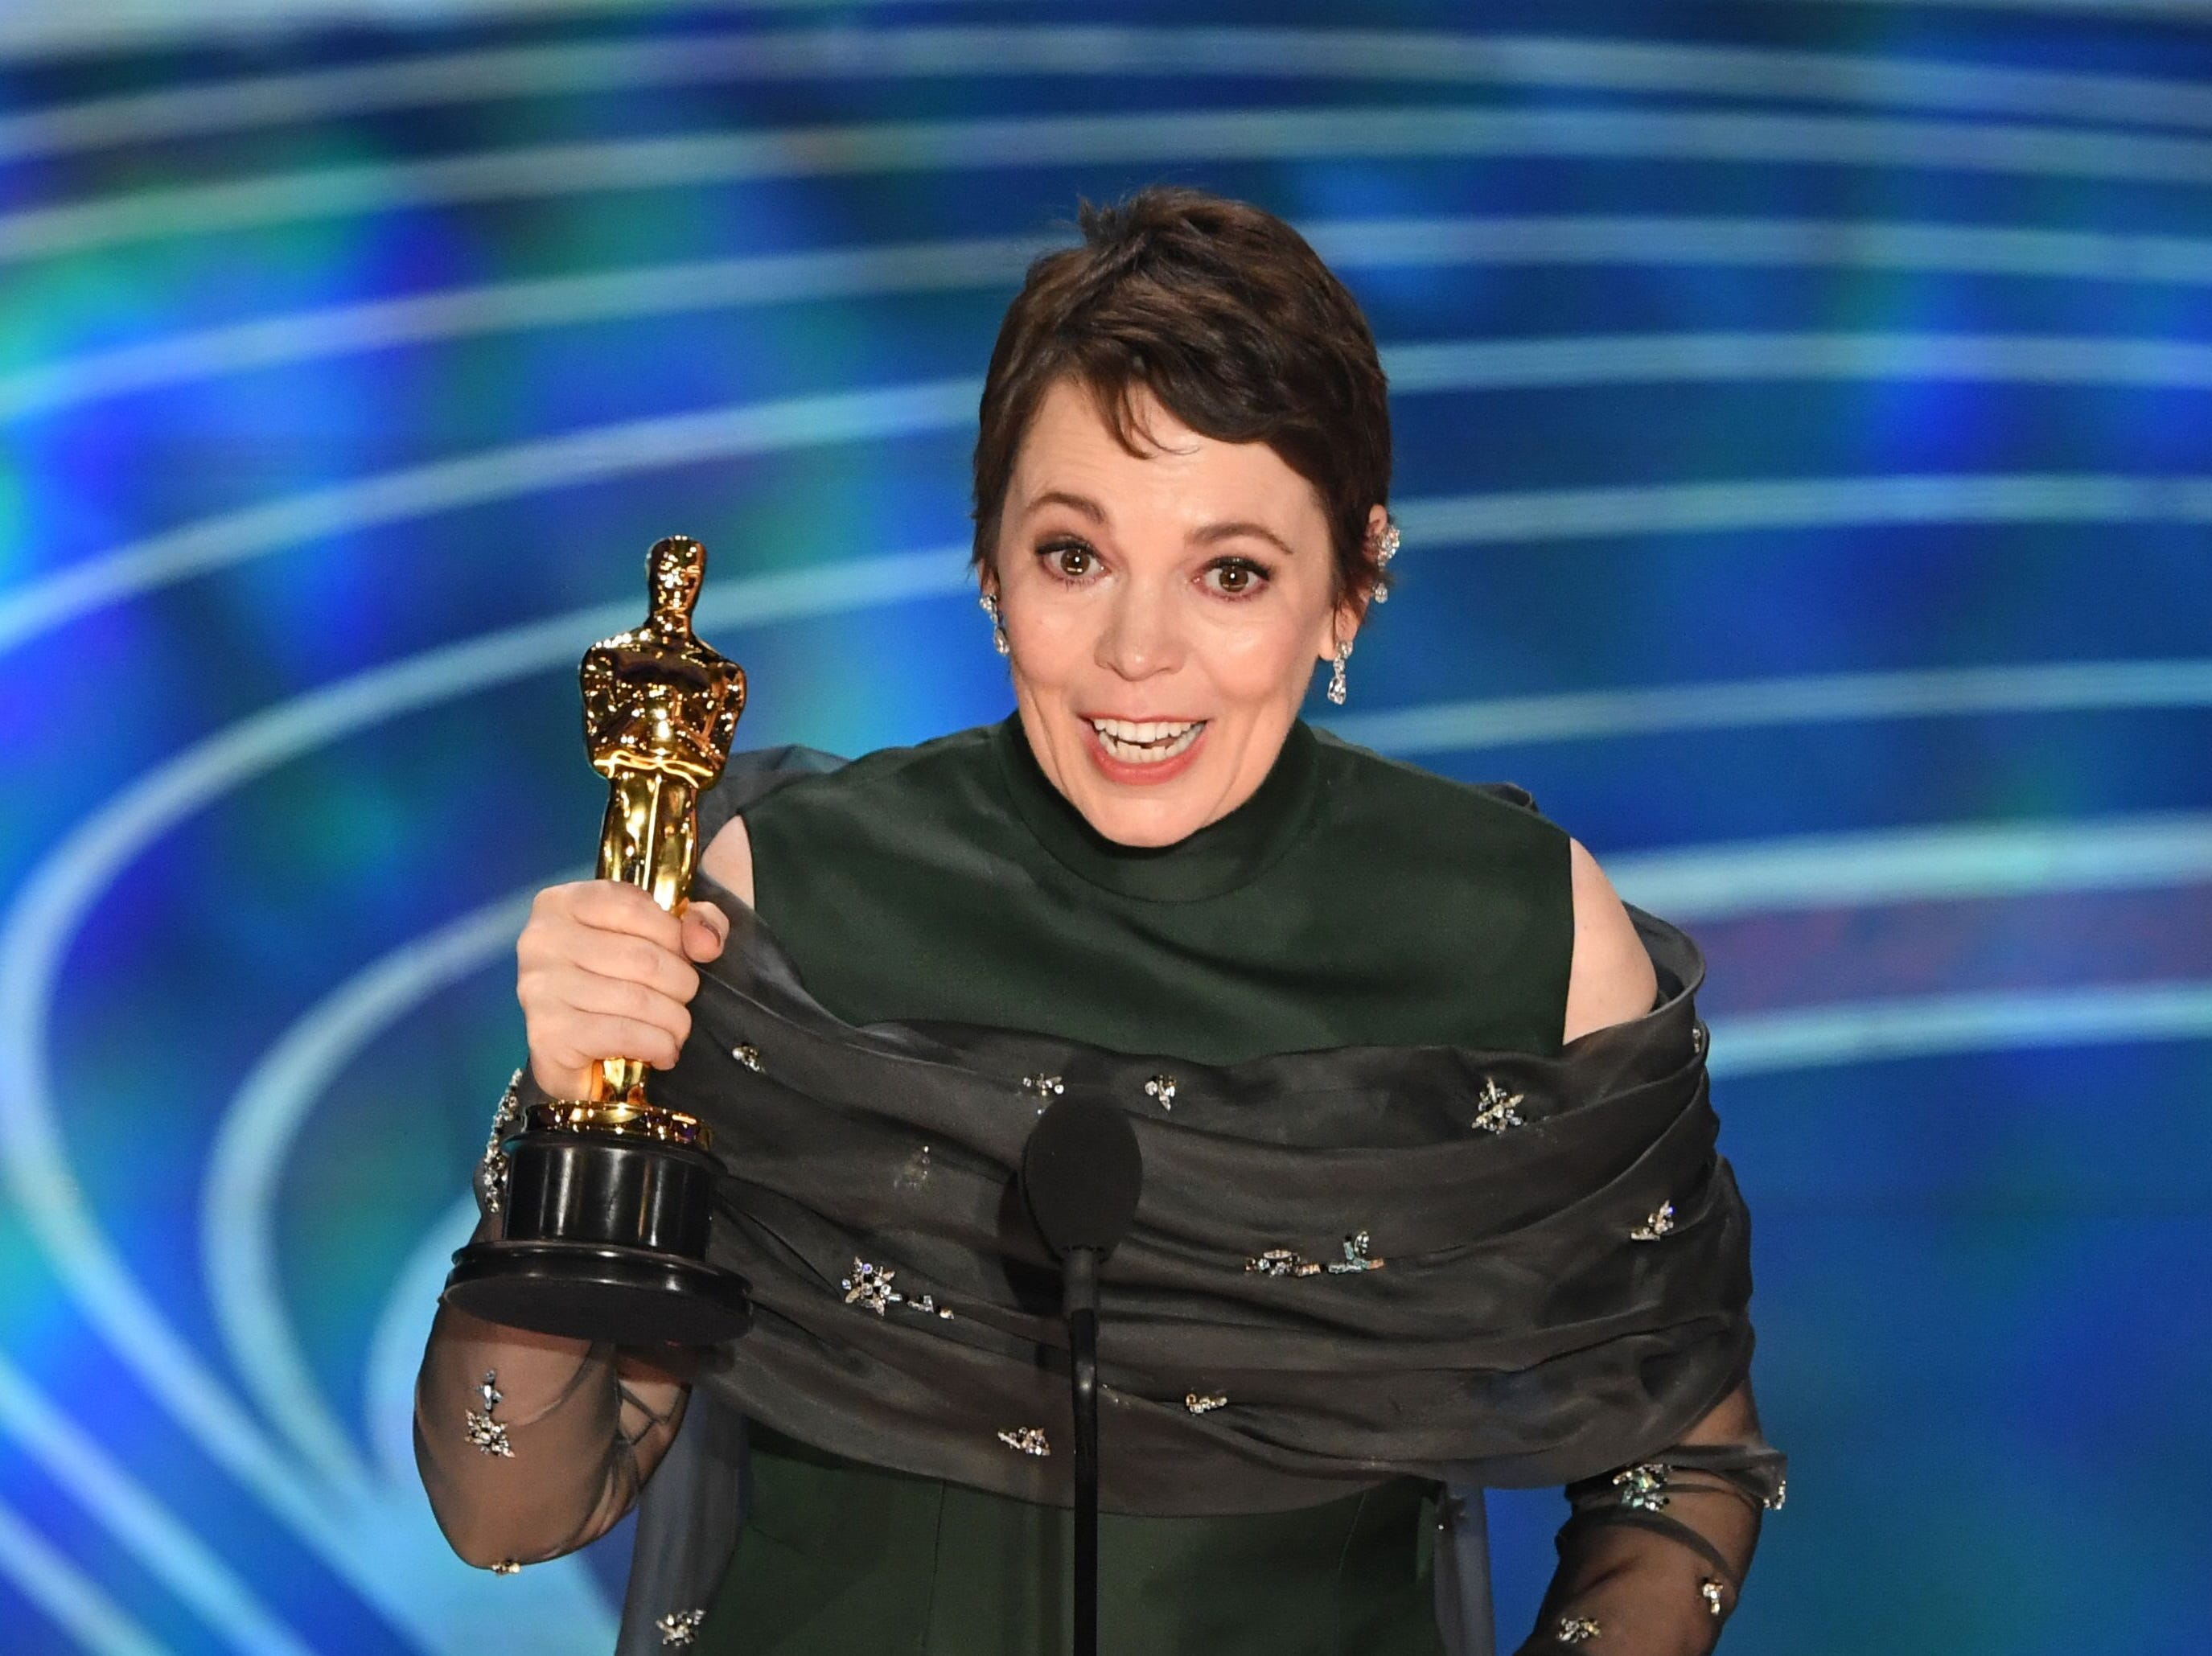 "Best Actress nominee for ""The Favourite"" Olivia Colman accepts the award for Best Actress during the 91st Annual Academy Awards at the Dolby Theatre in Hollywood, California on February 24, 2019."